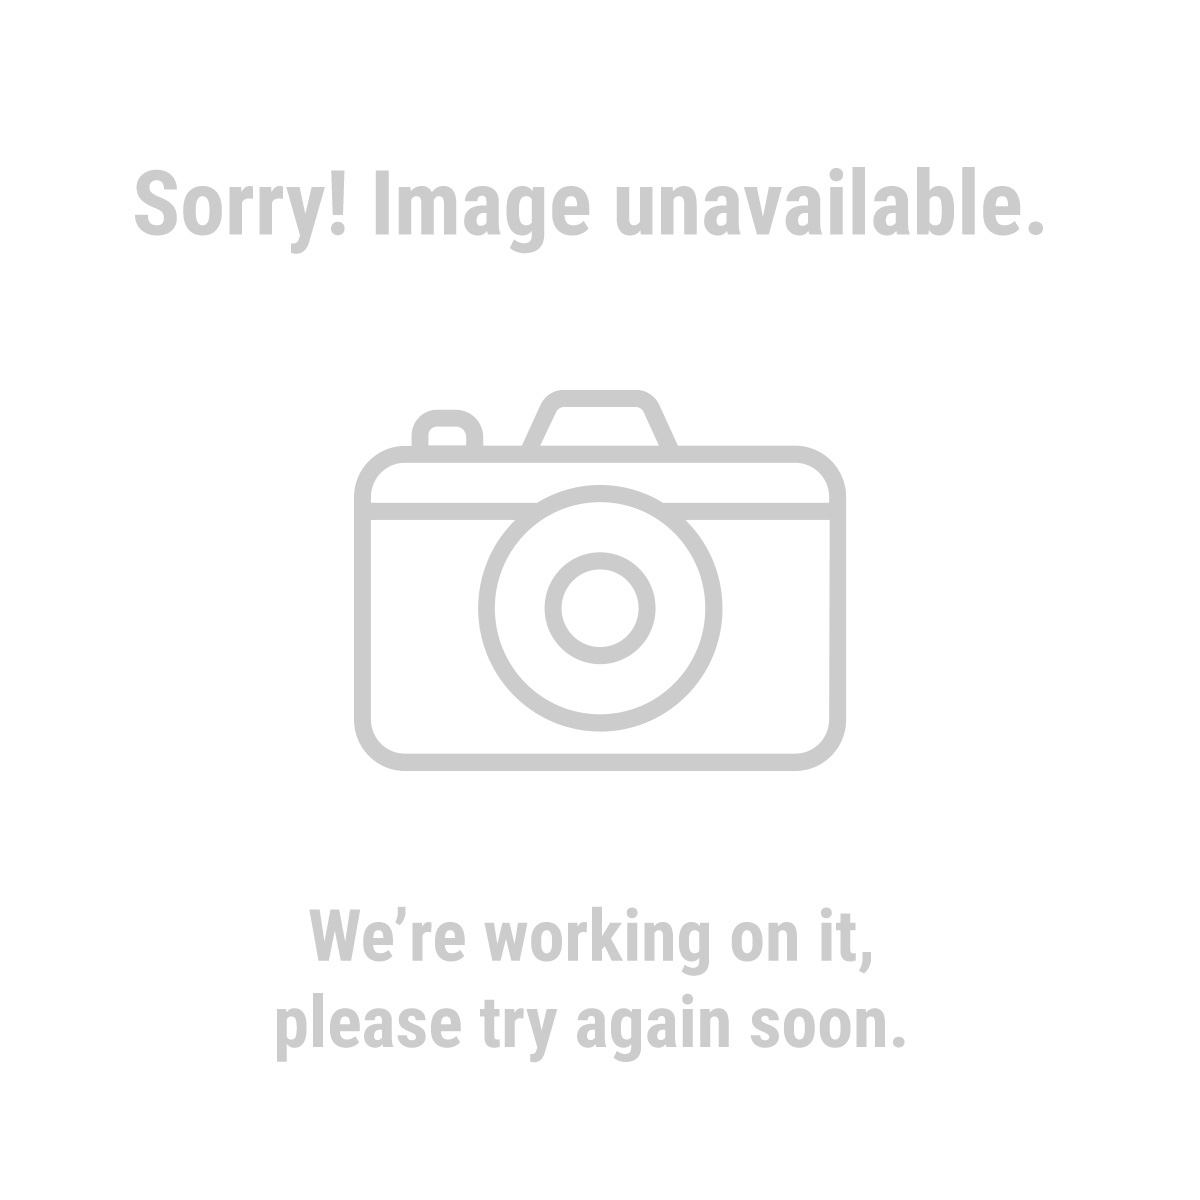 ShelterLogic 68776 12 ft x 28 ft Round Top Portable Shelter